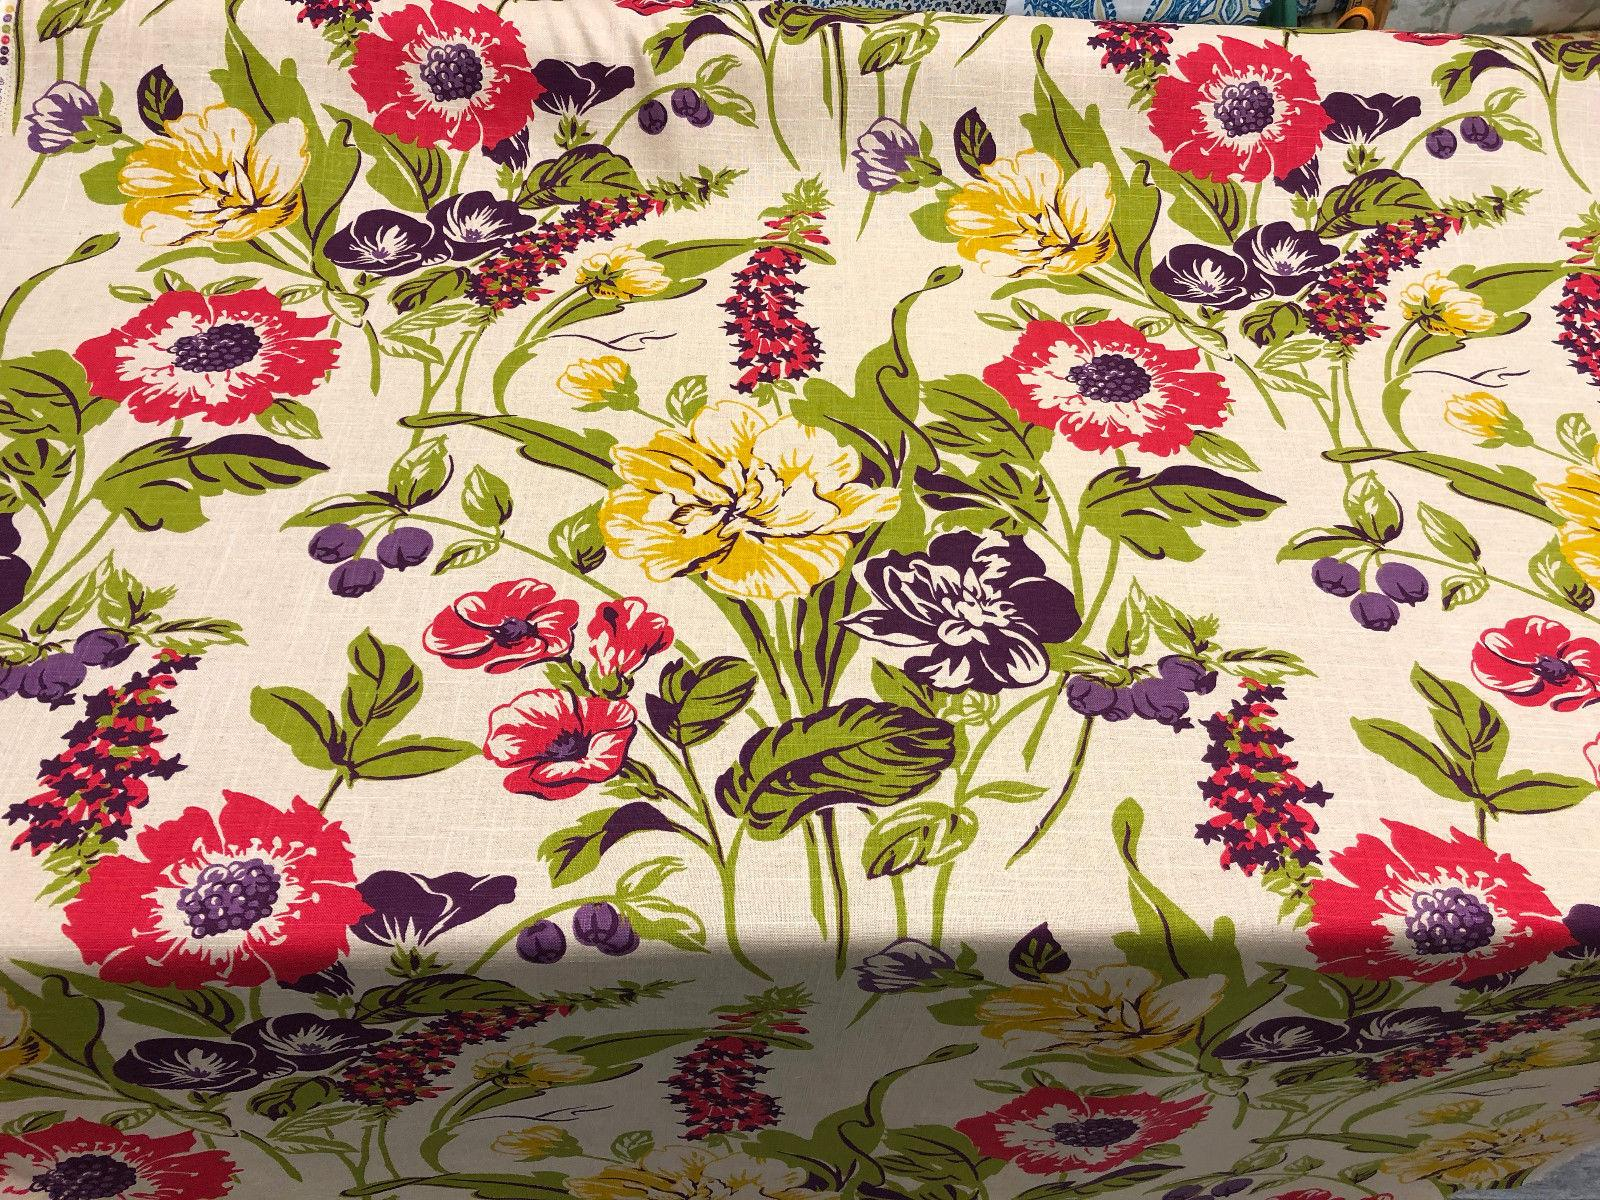 Becca Fiesta Floral Linen Drapery Fabric Upholstery Fabric By The